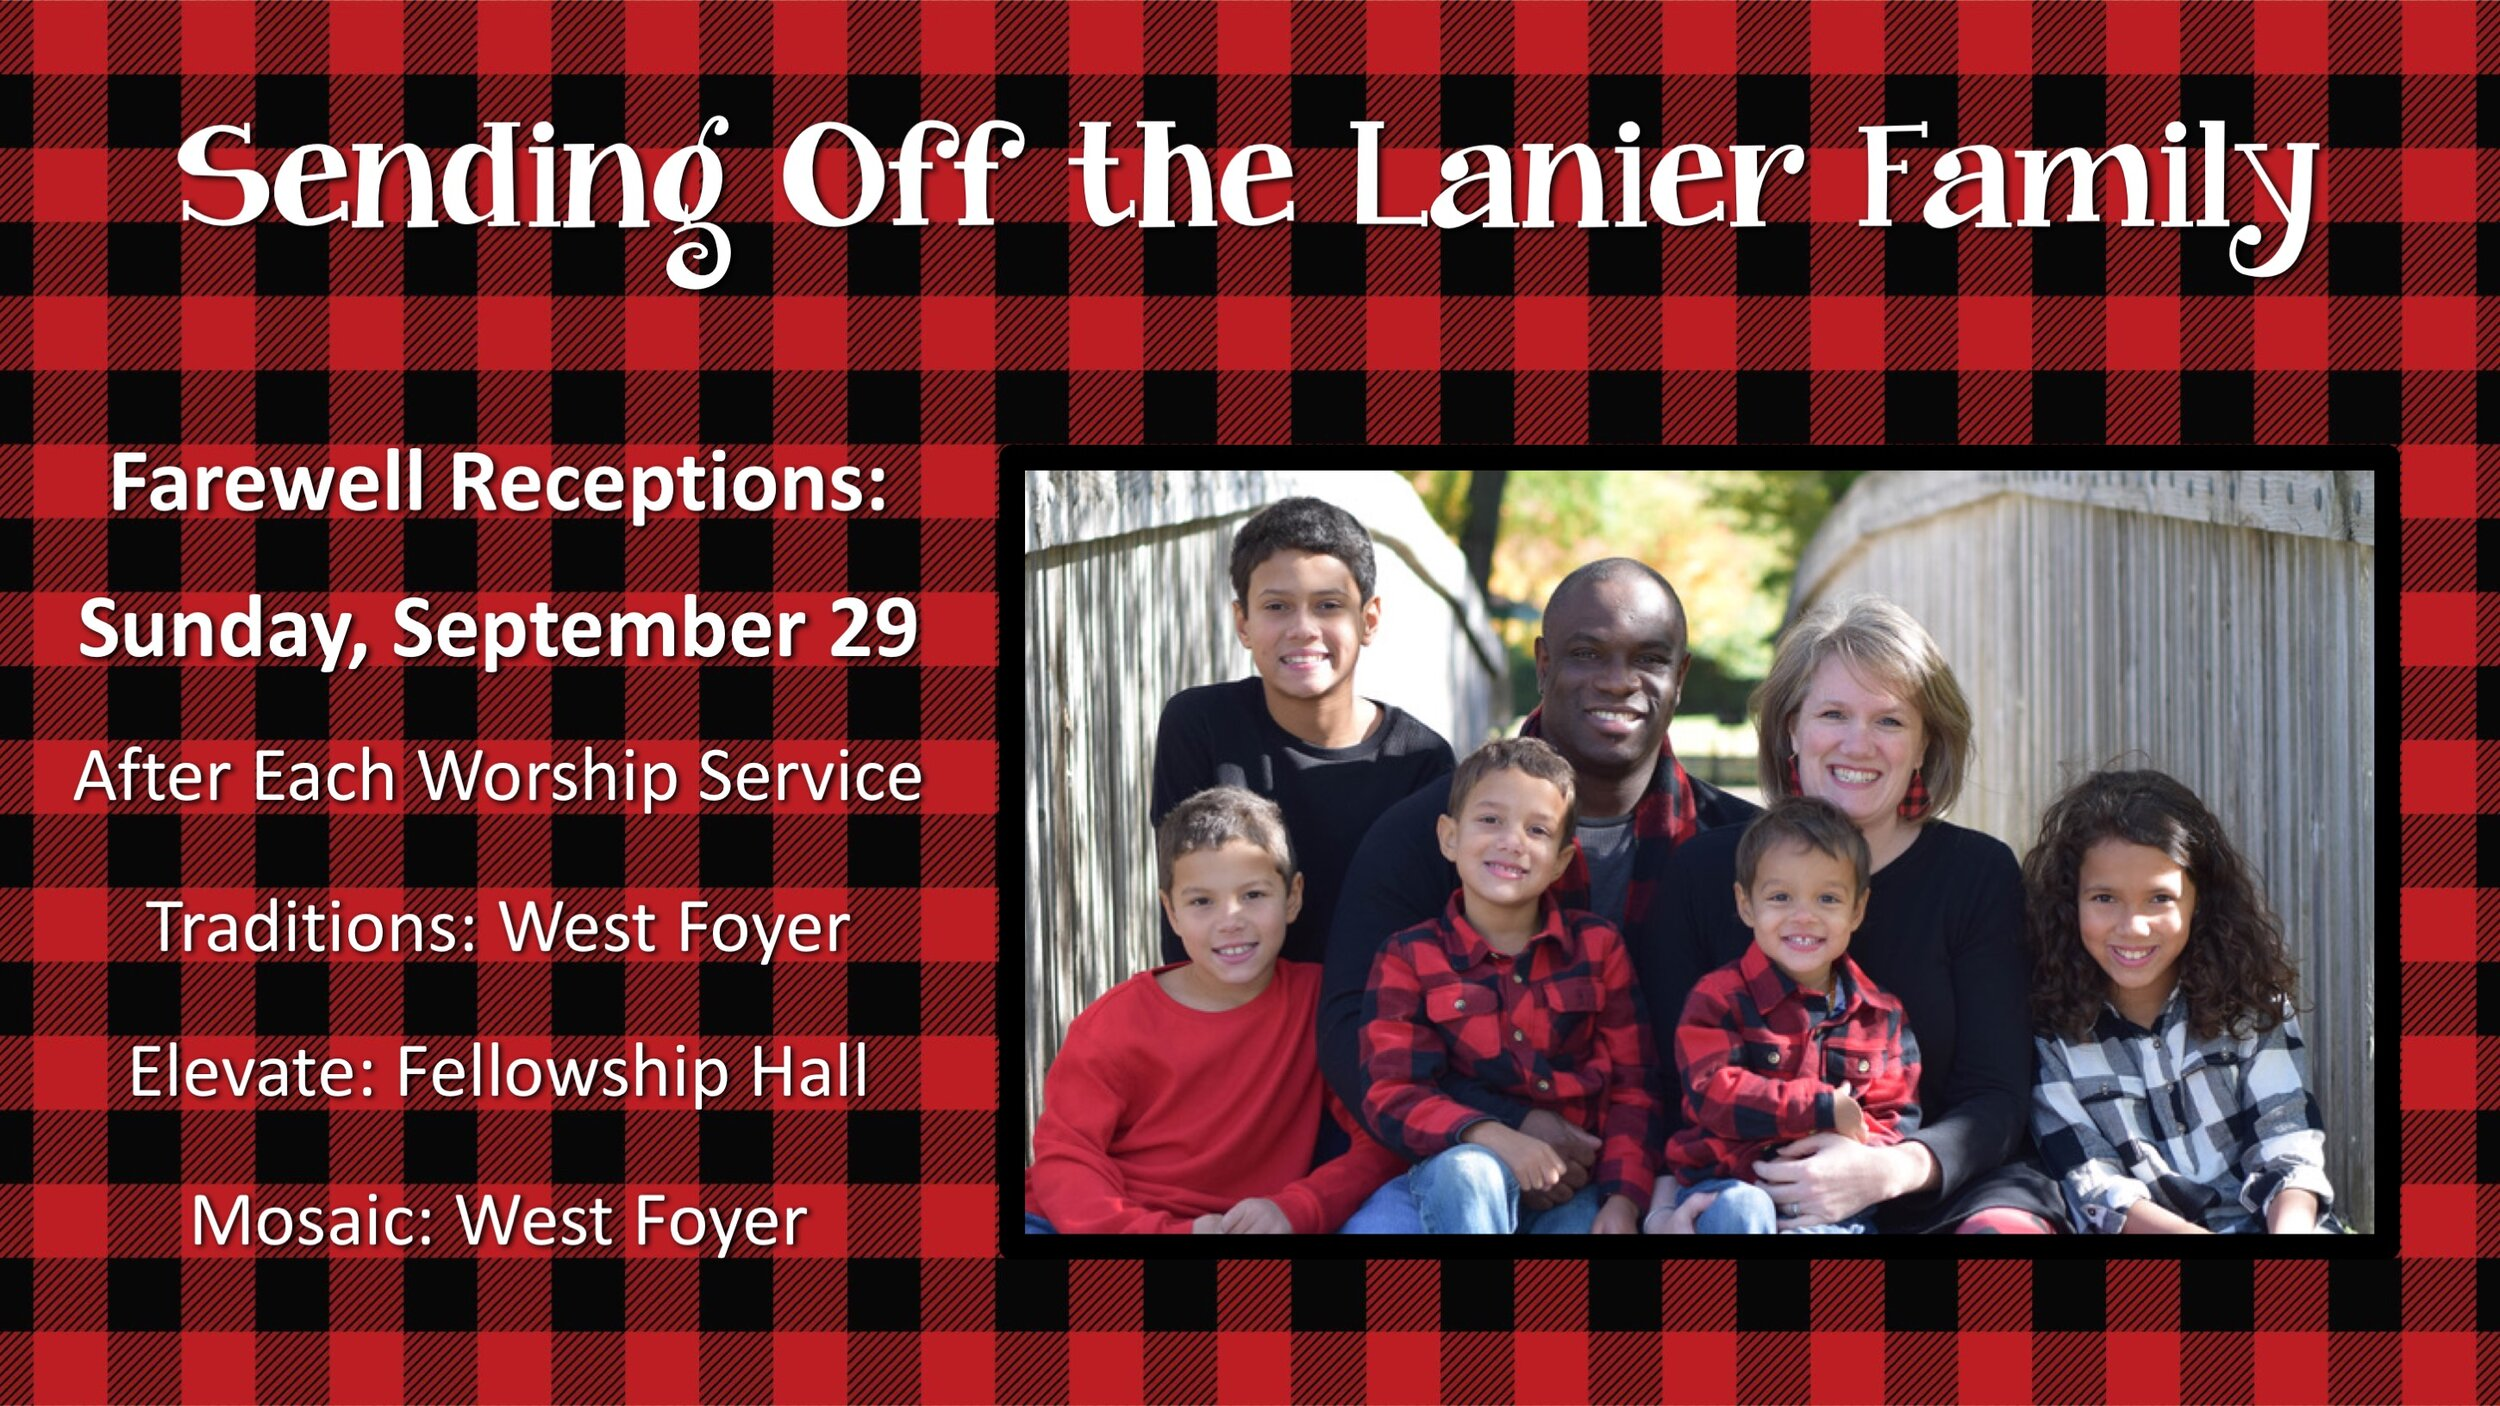 Lanier Family Send Off 16x9.jpg